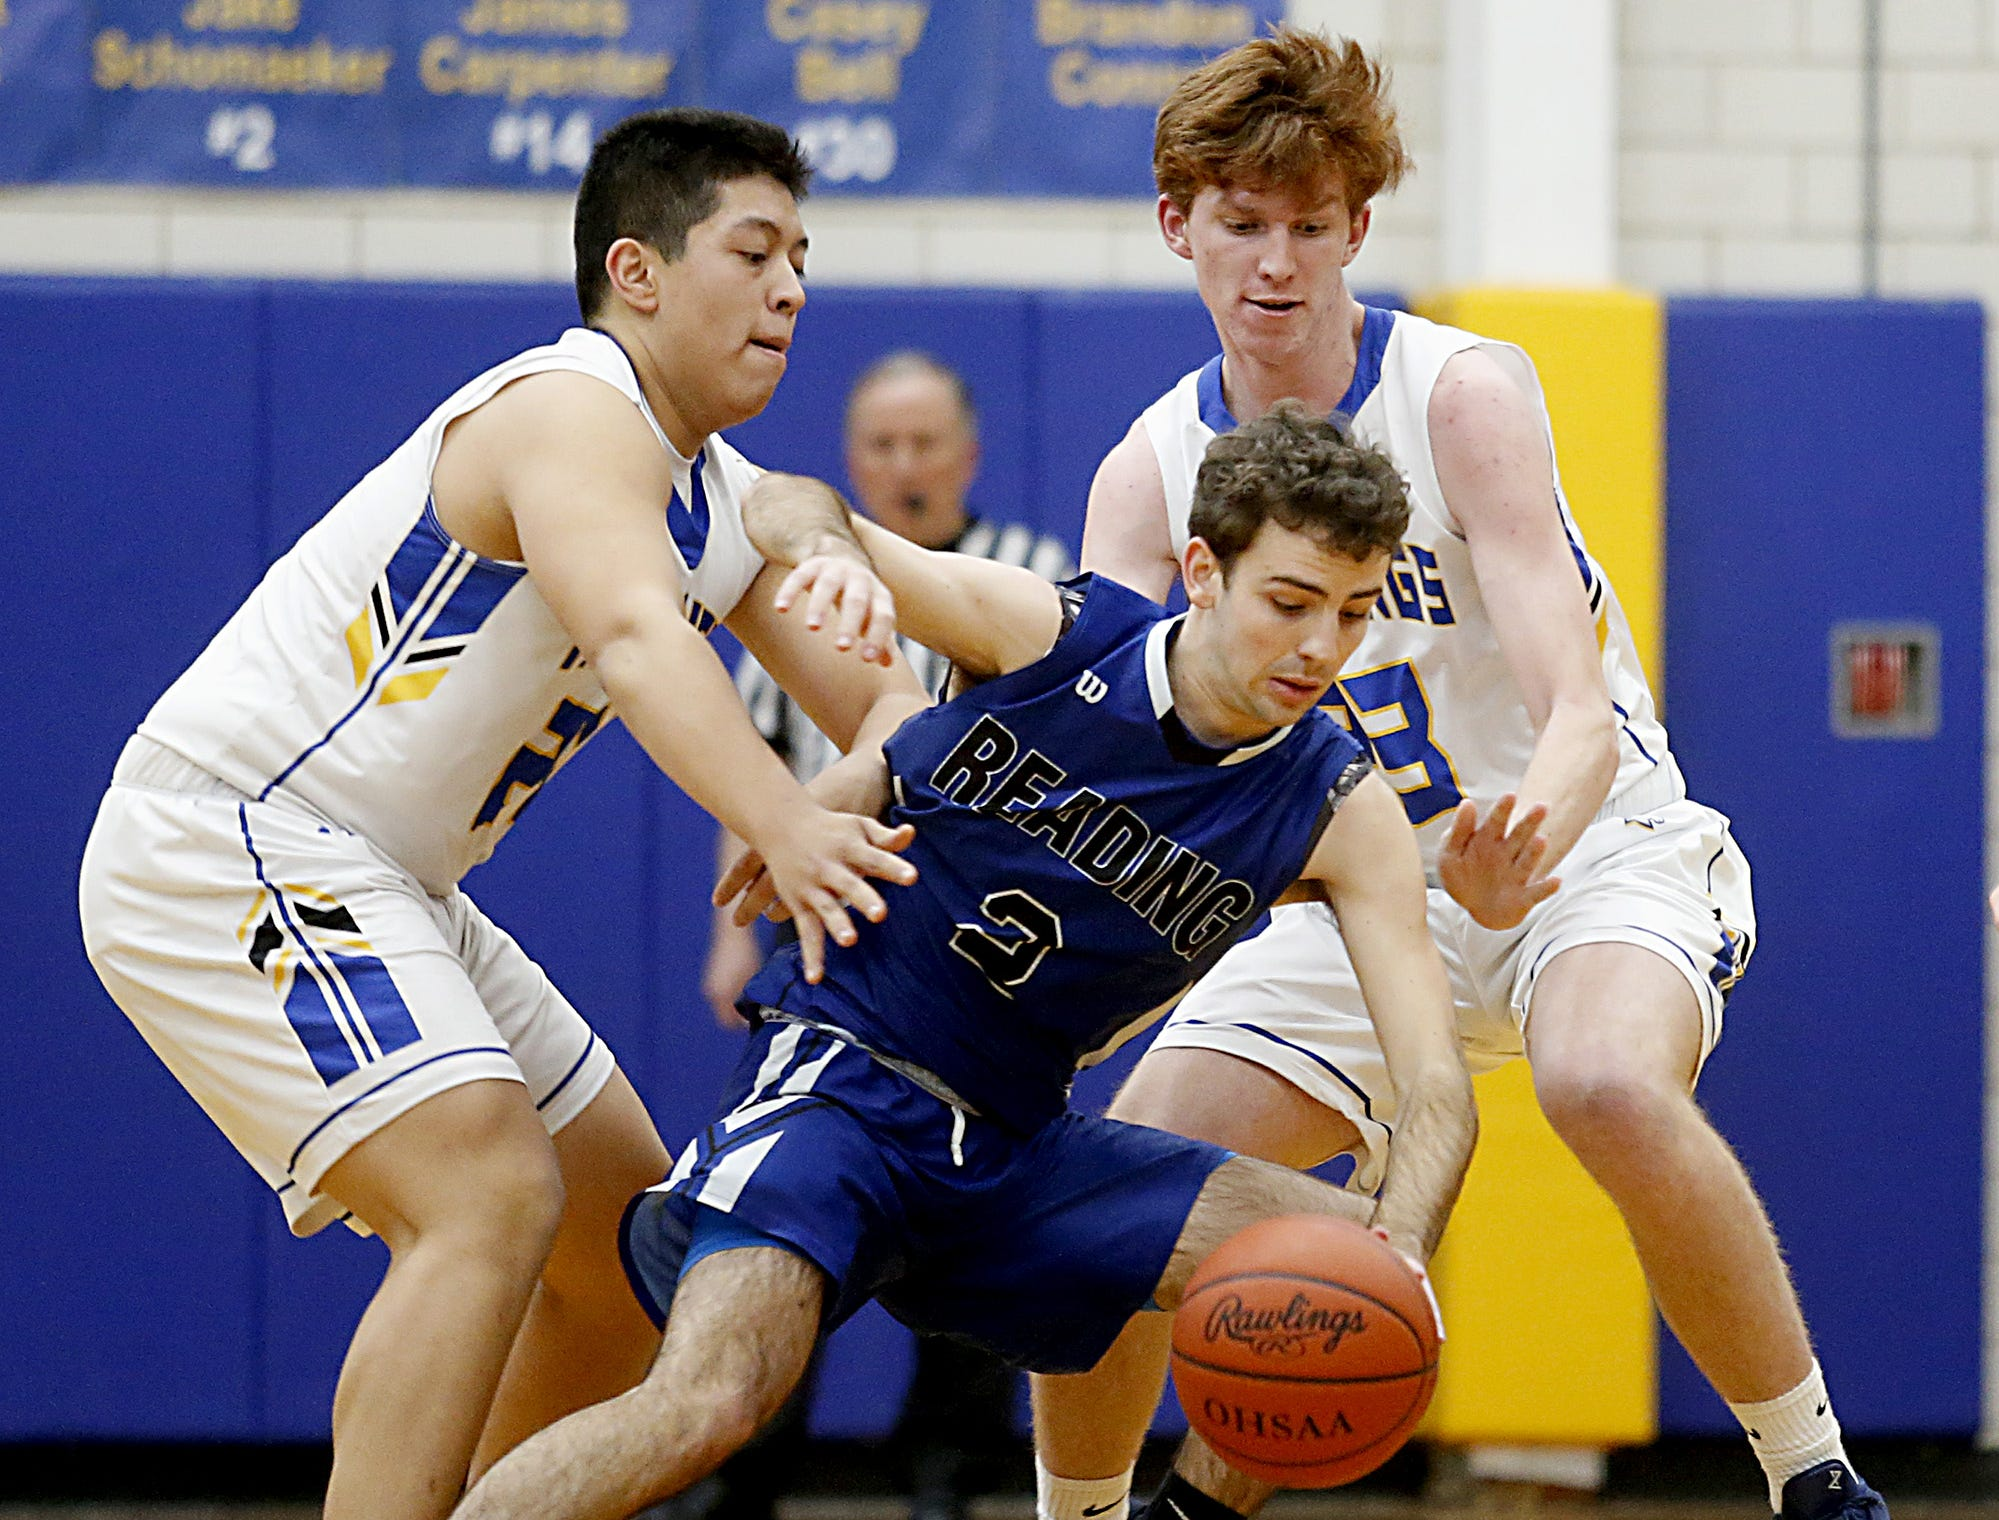 Reading guard Brandon Ross is double teamed by Madeira forward Steven Noung and guard Sam Solinski during their game at Madeira Tuesday, Jan. 29, 2019.